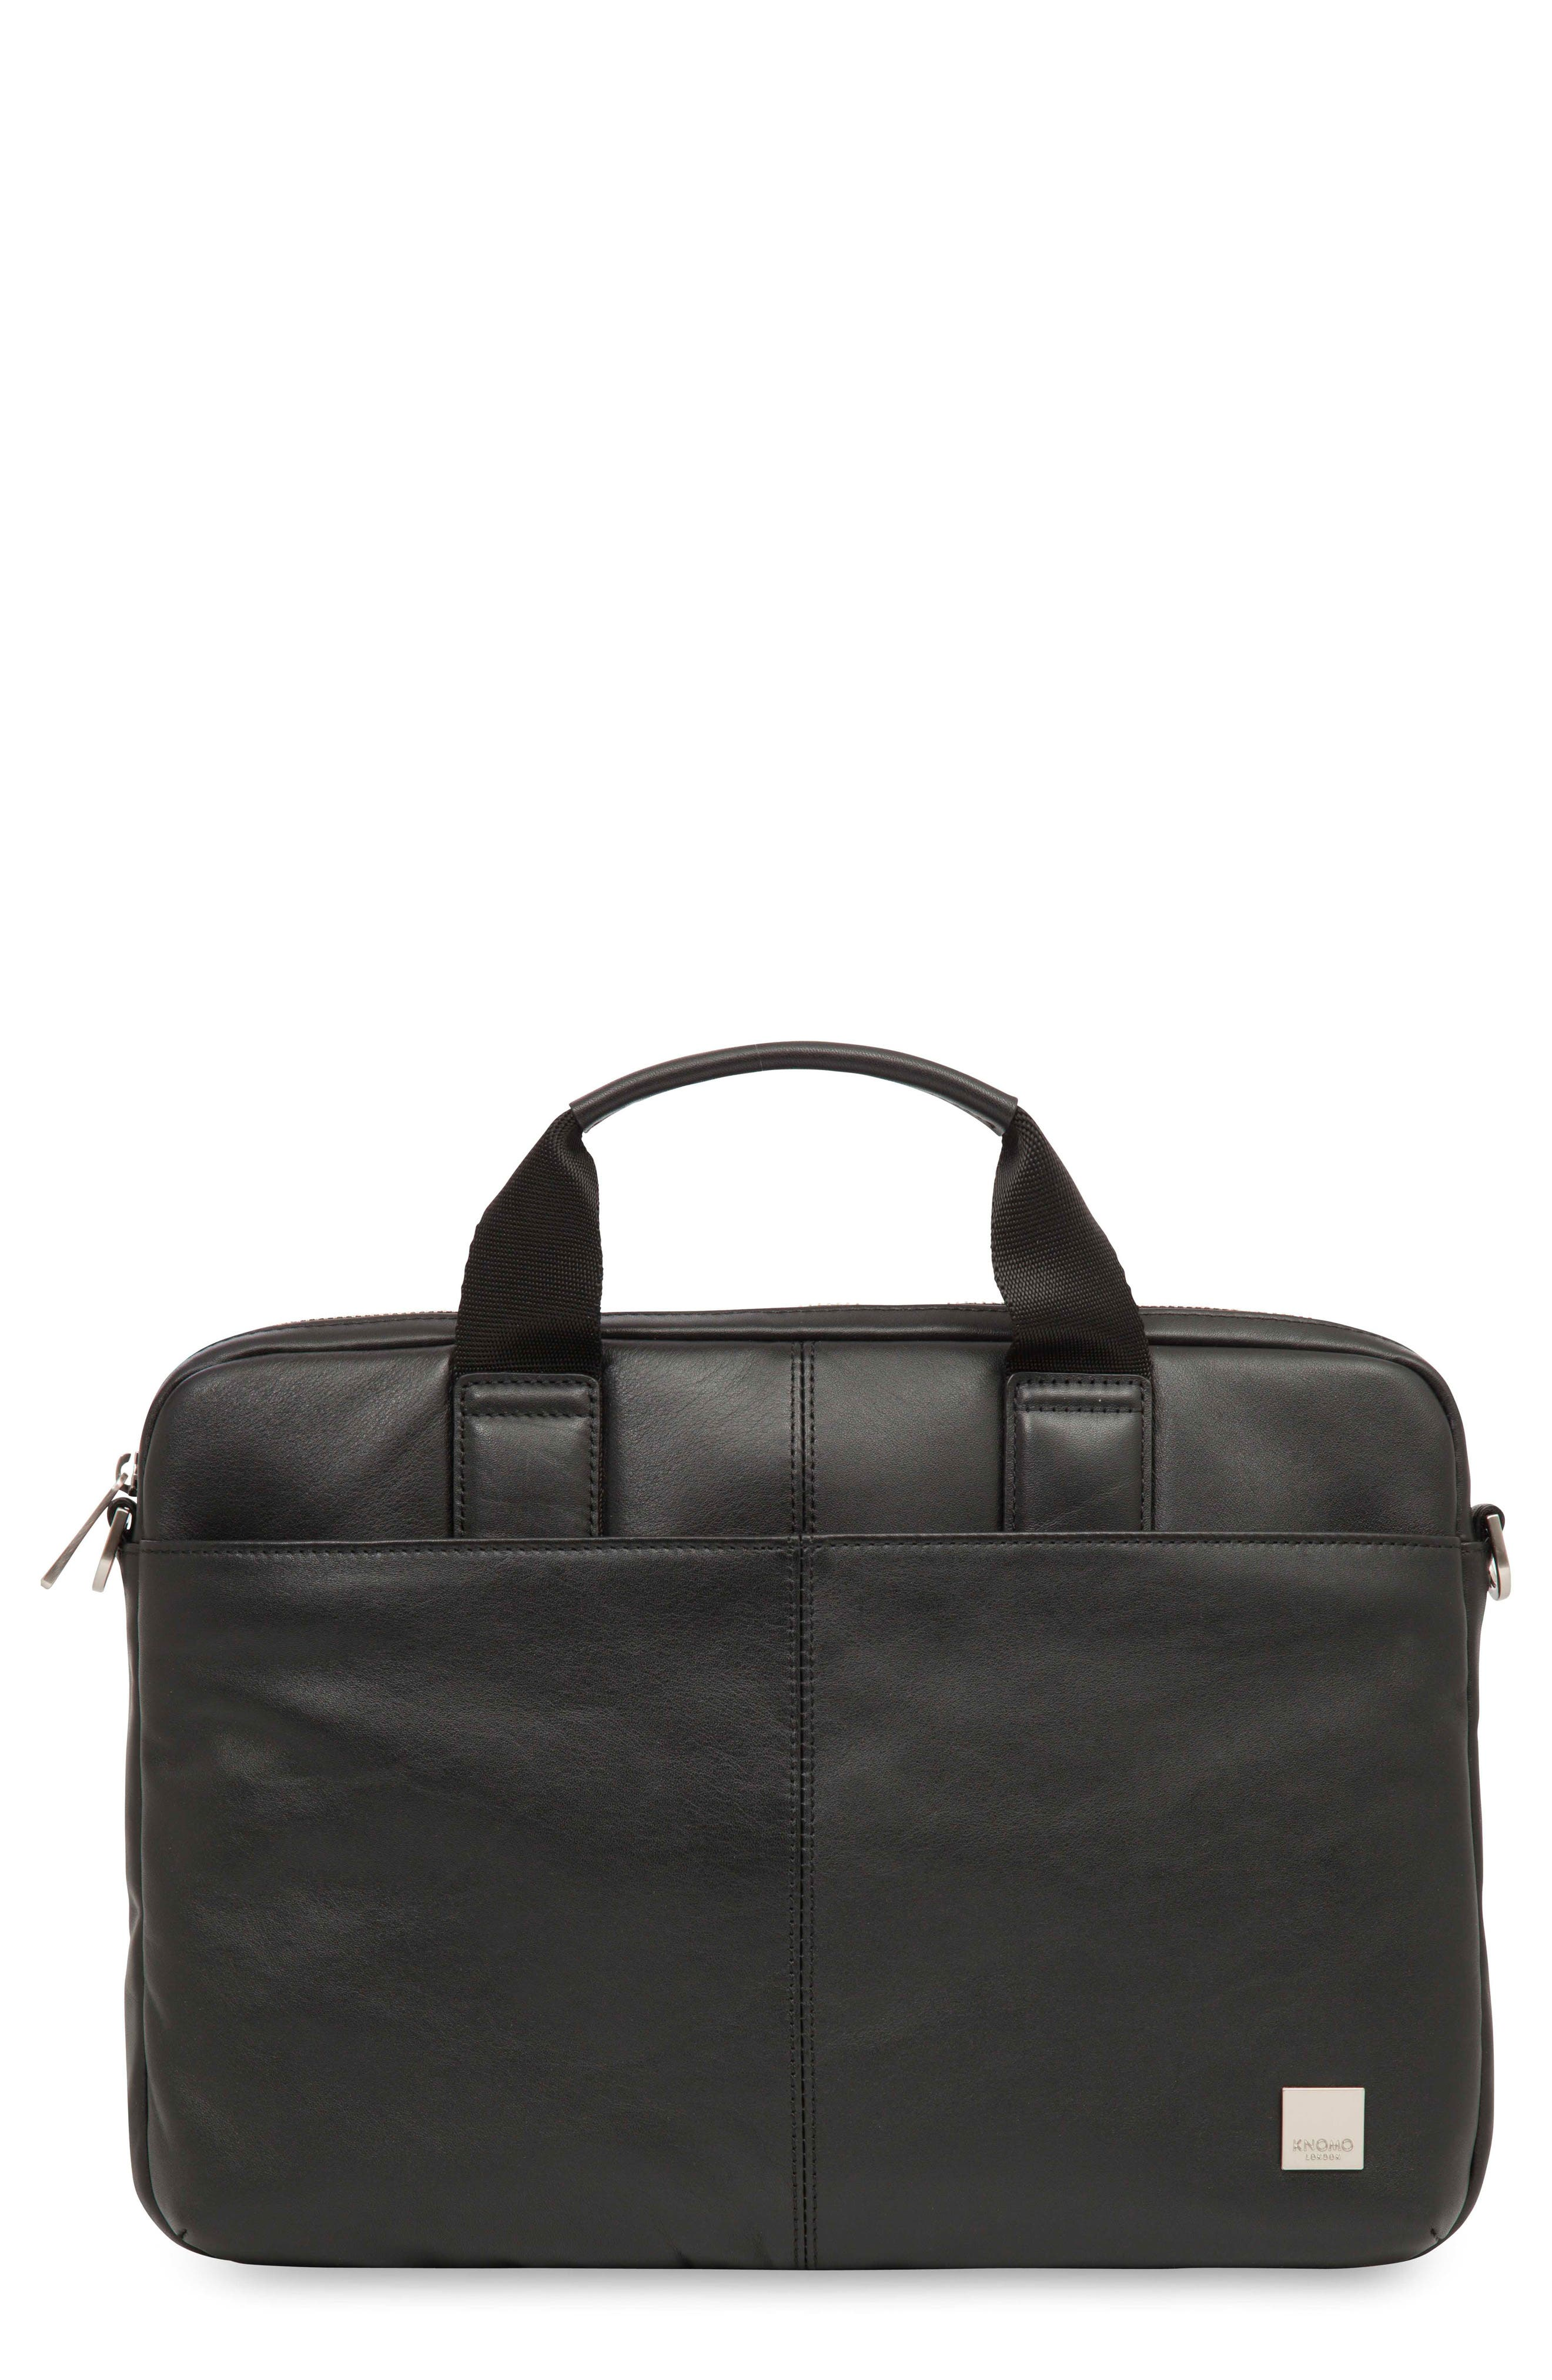 Brompton Stanford RFID Leather Briefcase,                             Main thumbnail 1, color,                             001